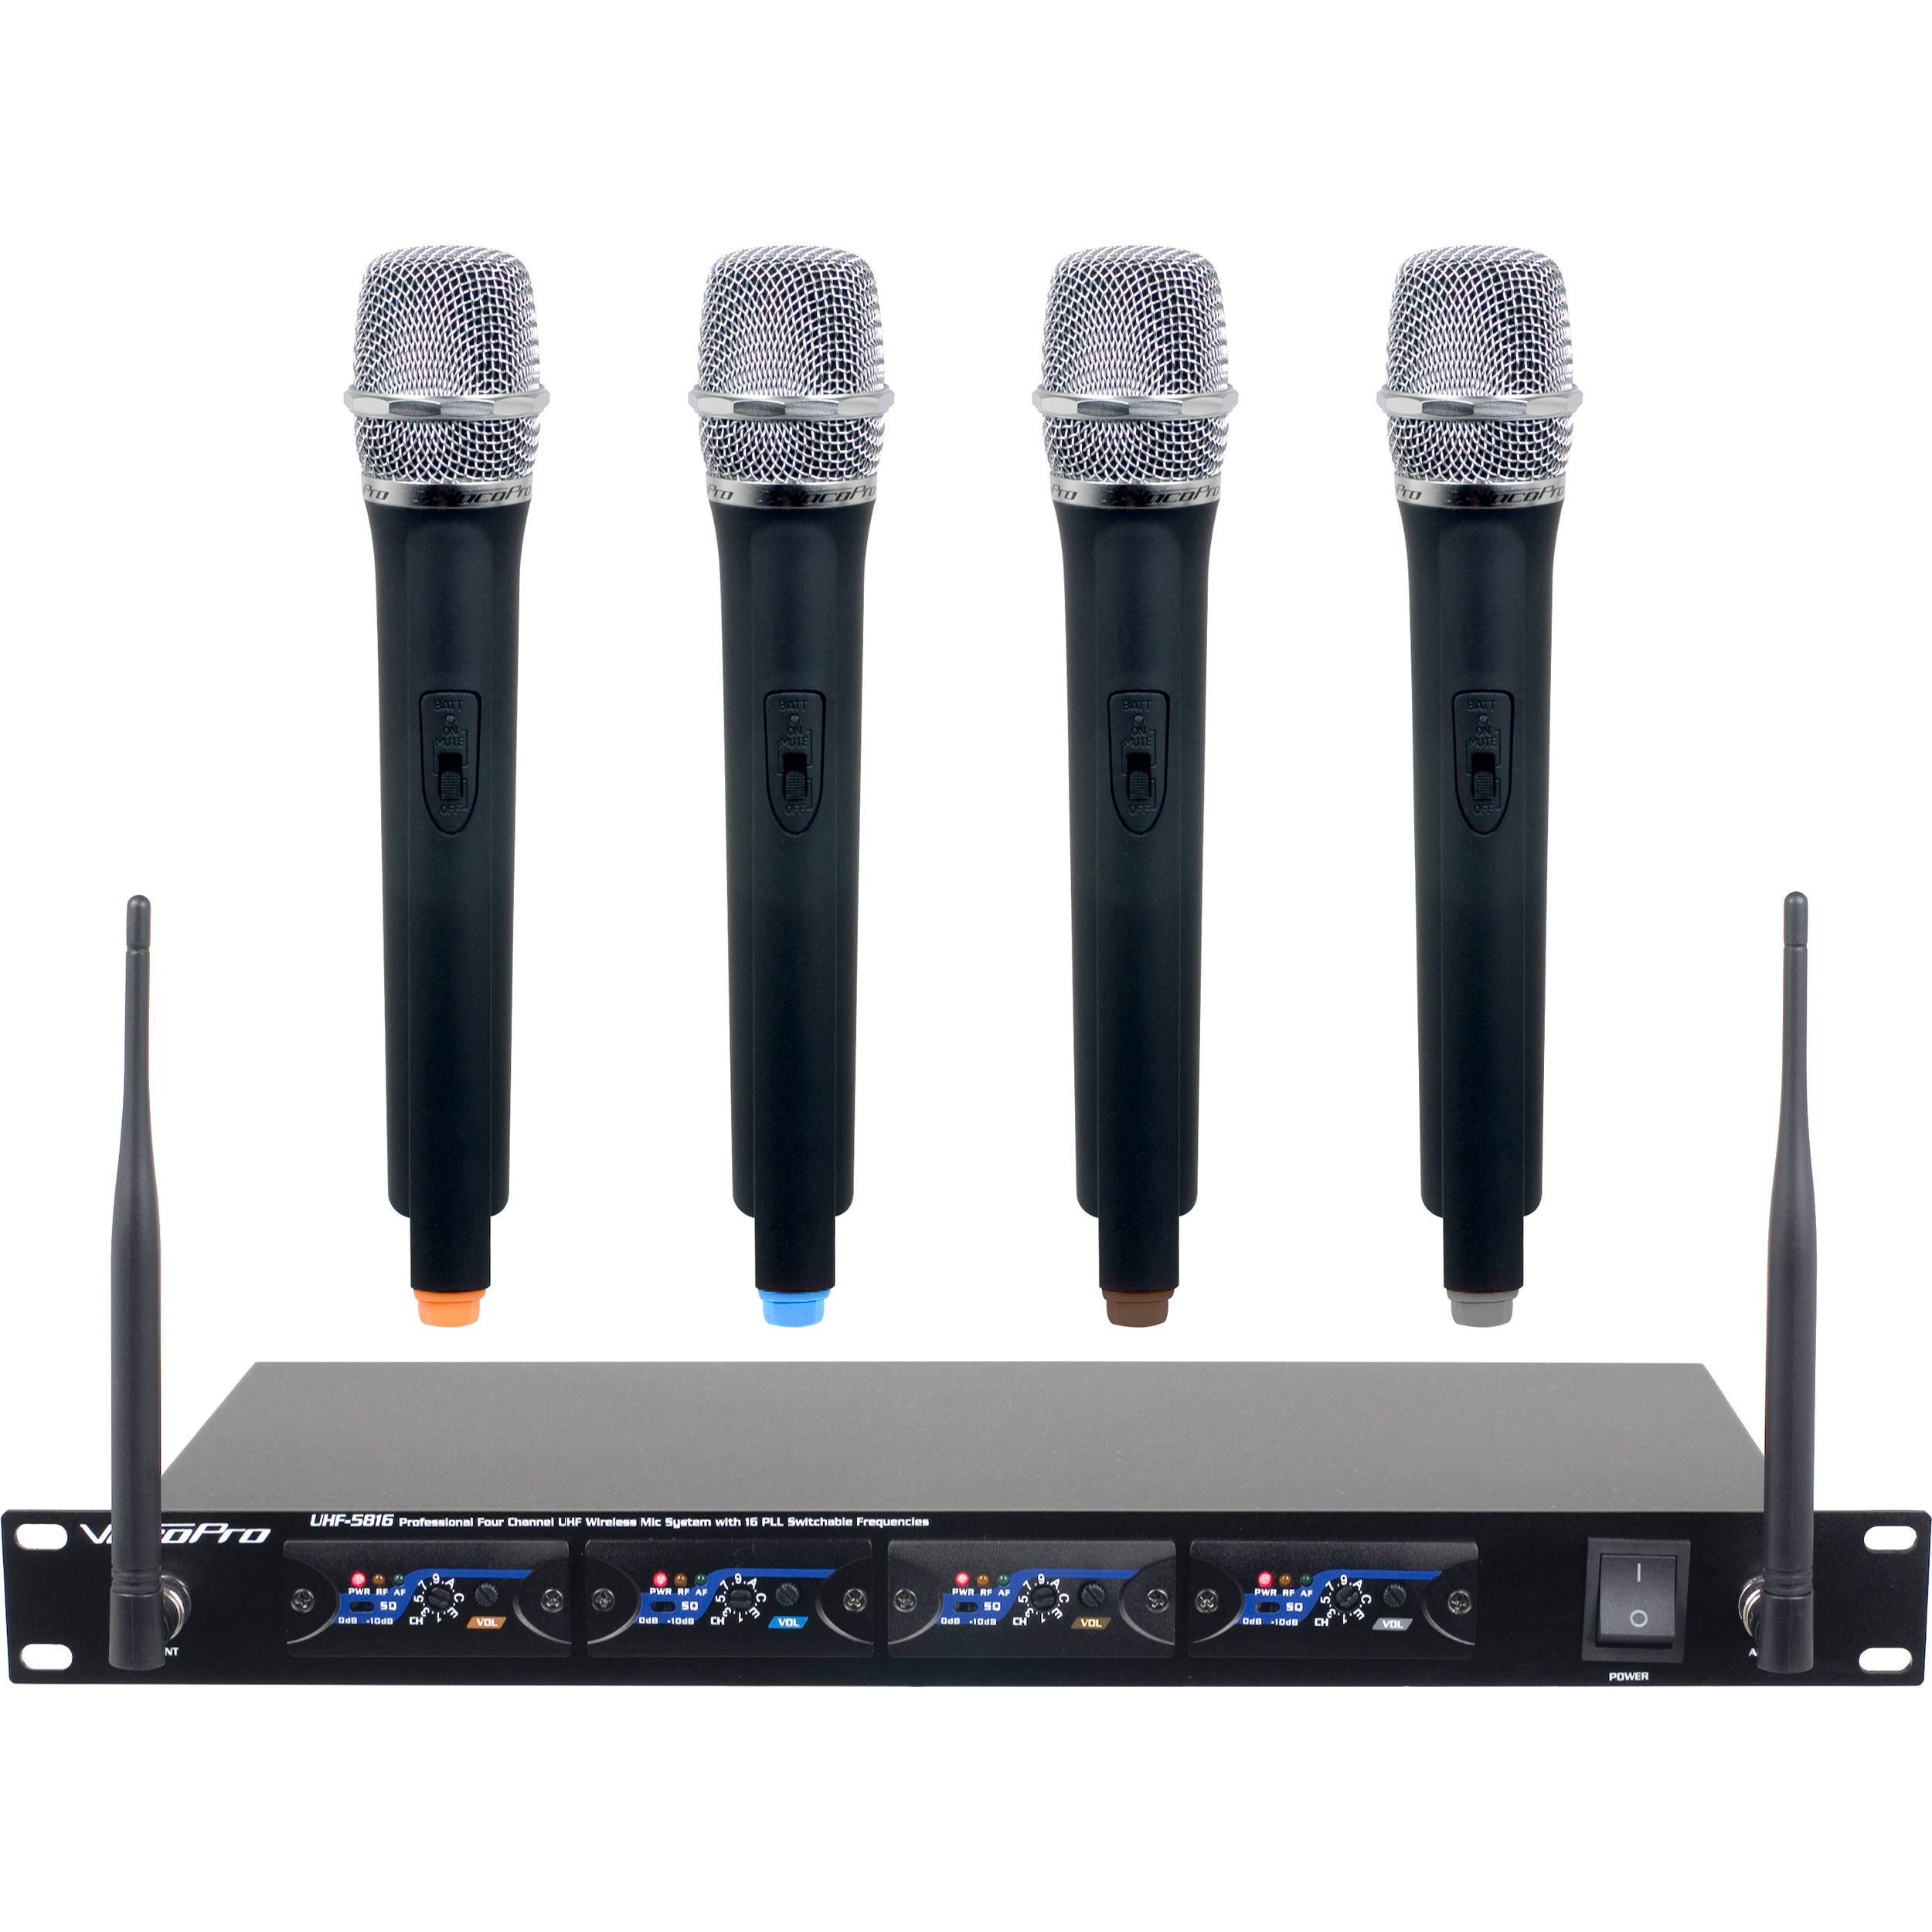 vocopro uhf 5816 t1 4 channel uhf wireless uhf 5816 t1 b h photo. Black Bedroom Furniture Sets. Home Design Ideas